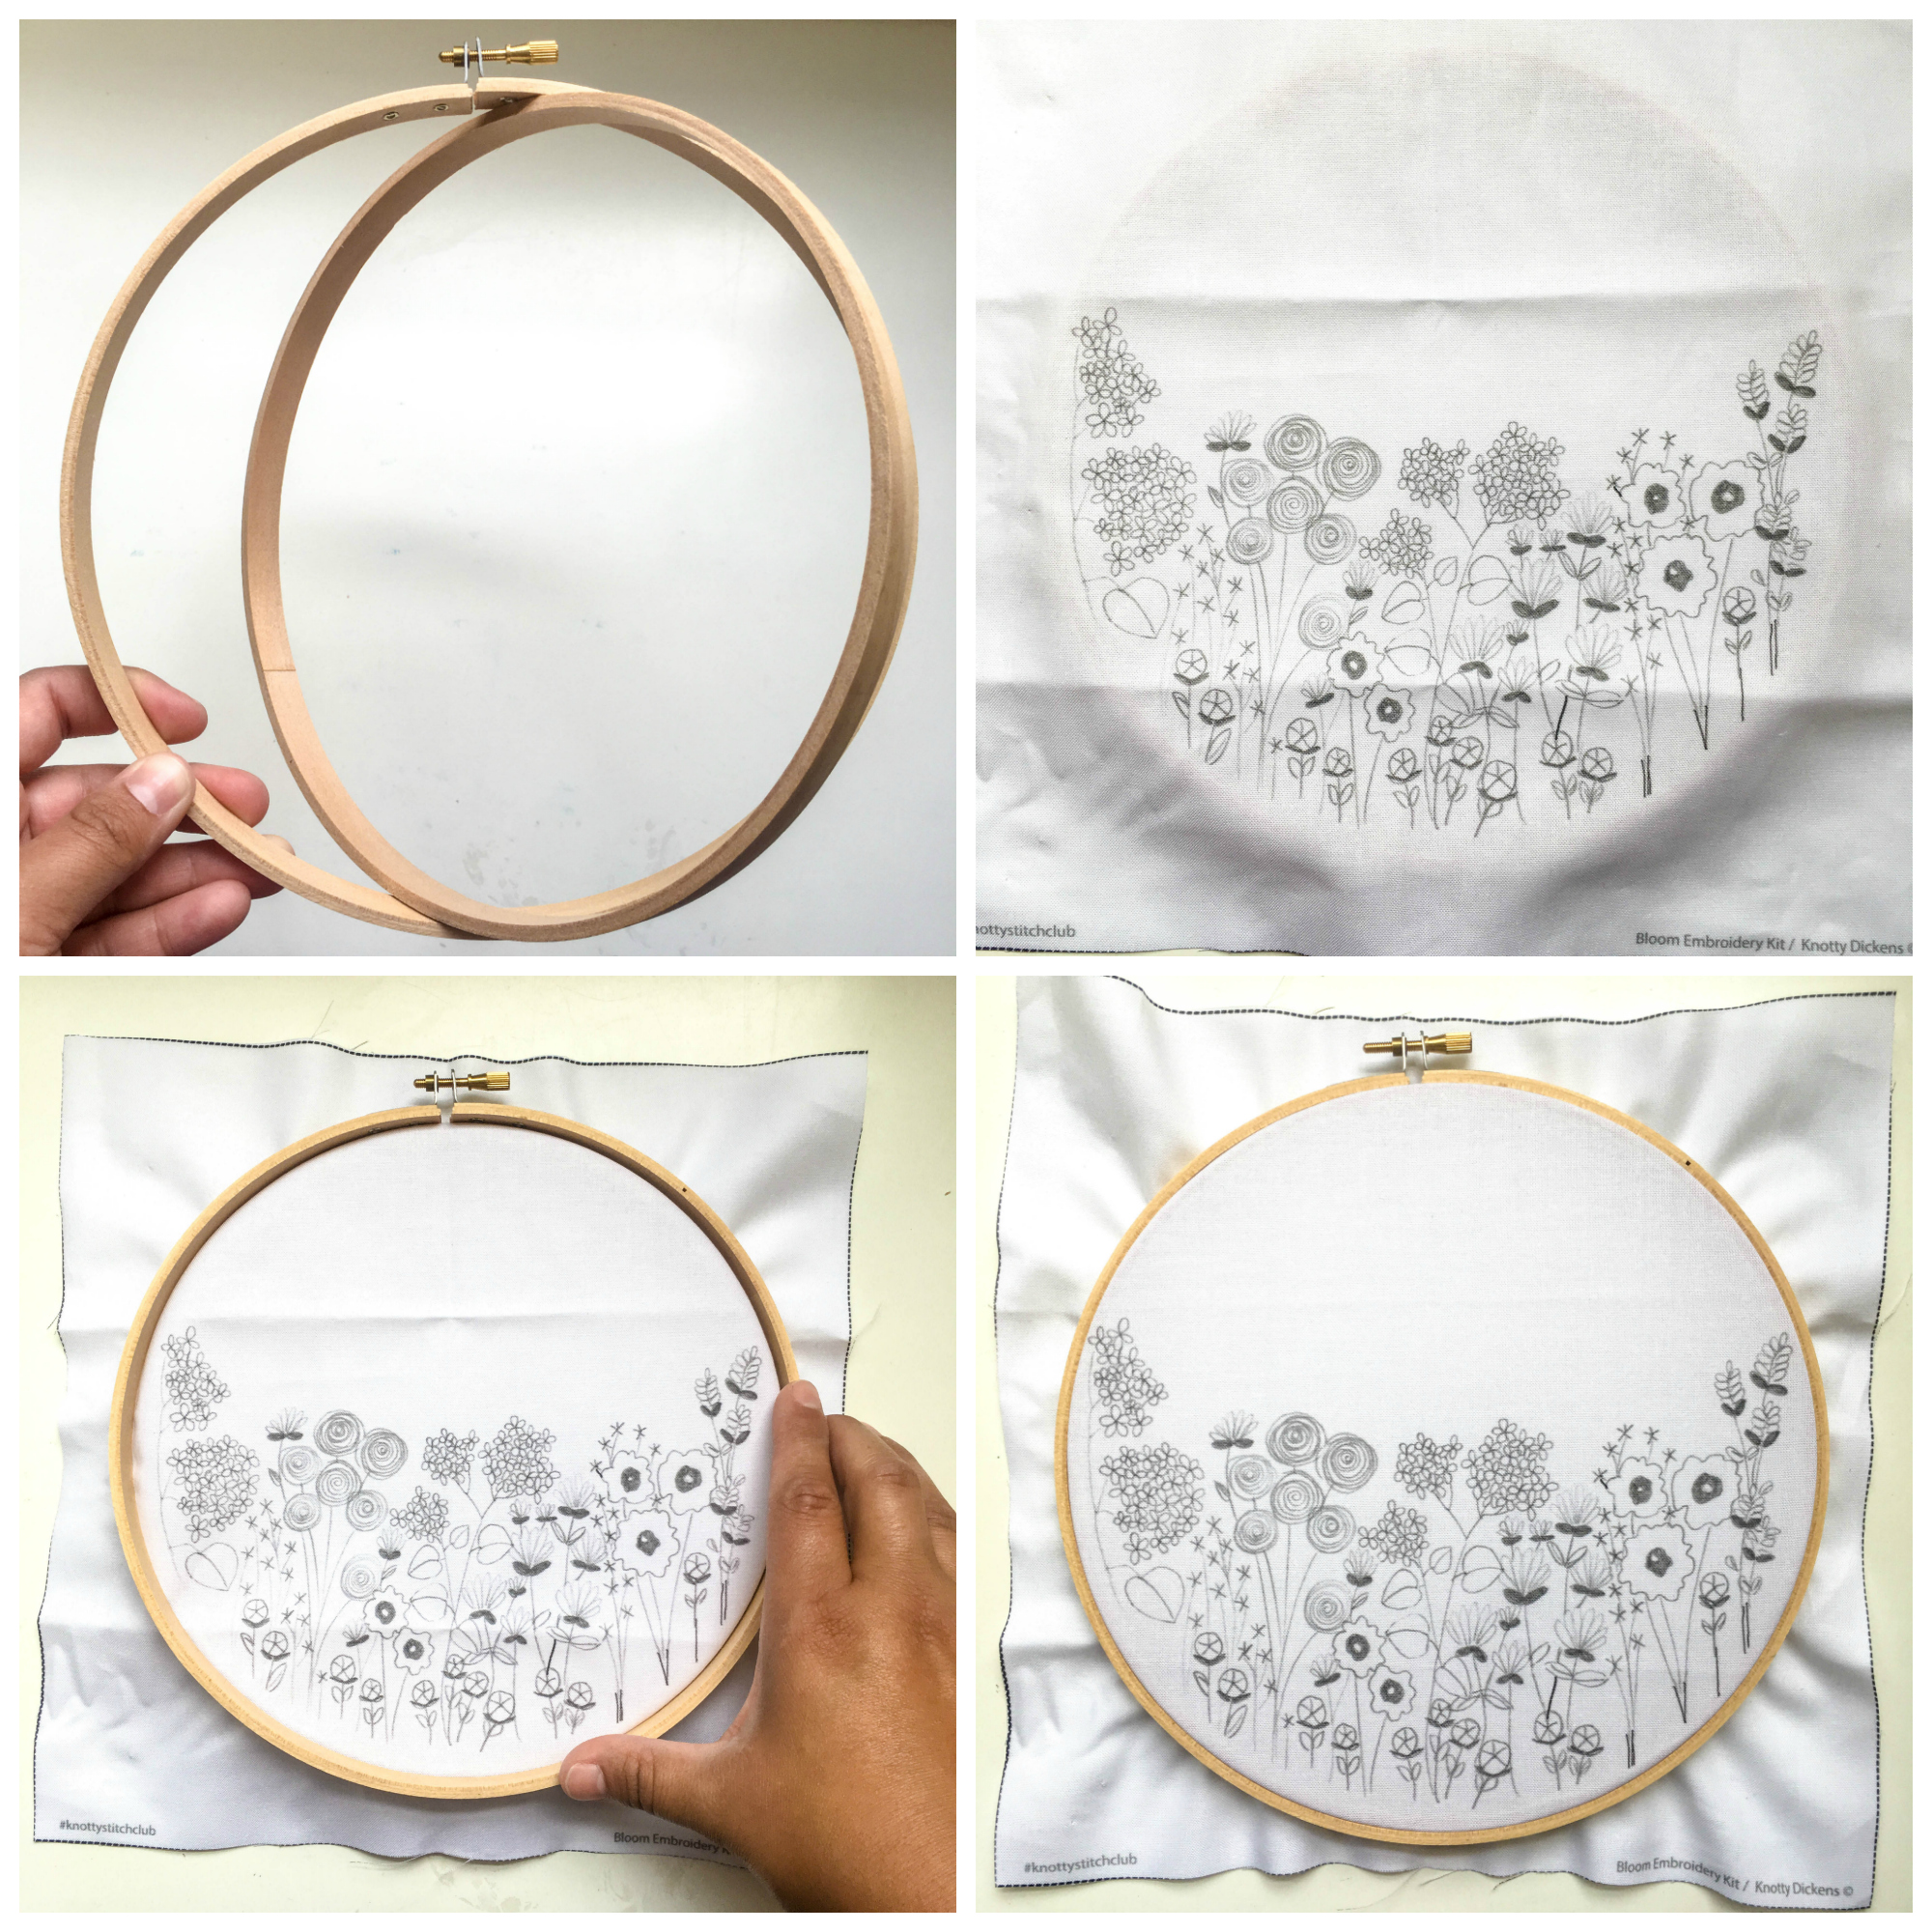 How To Put Fabric Inside Embroidery Hoop